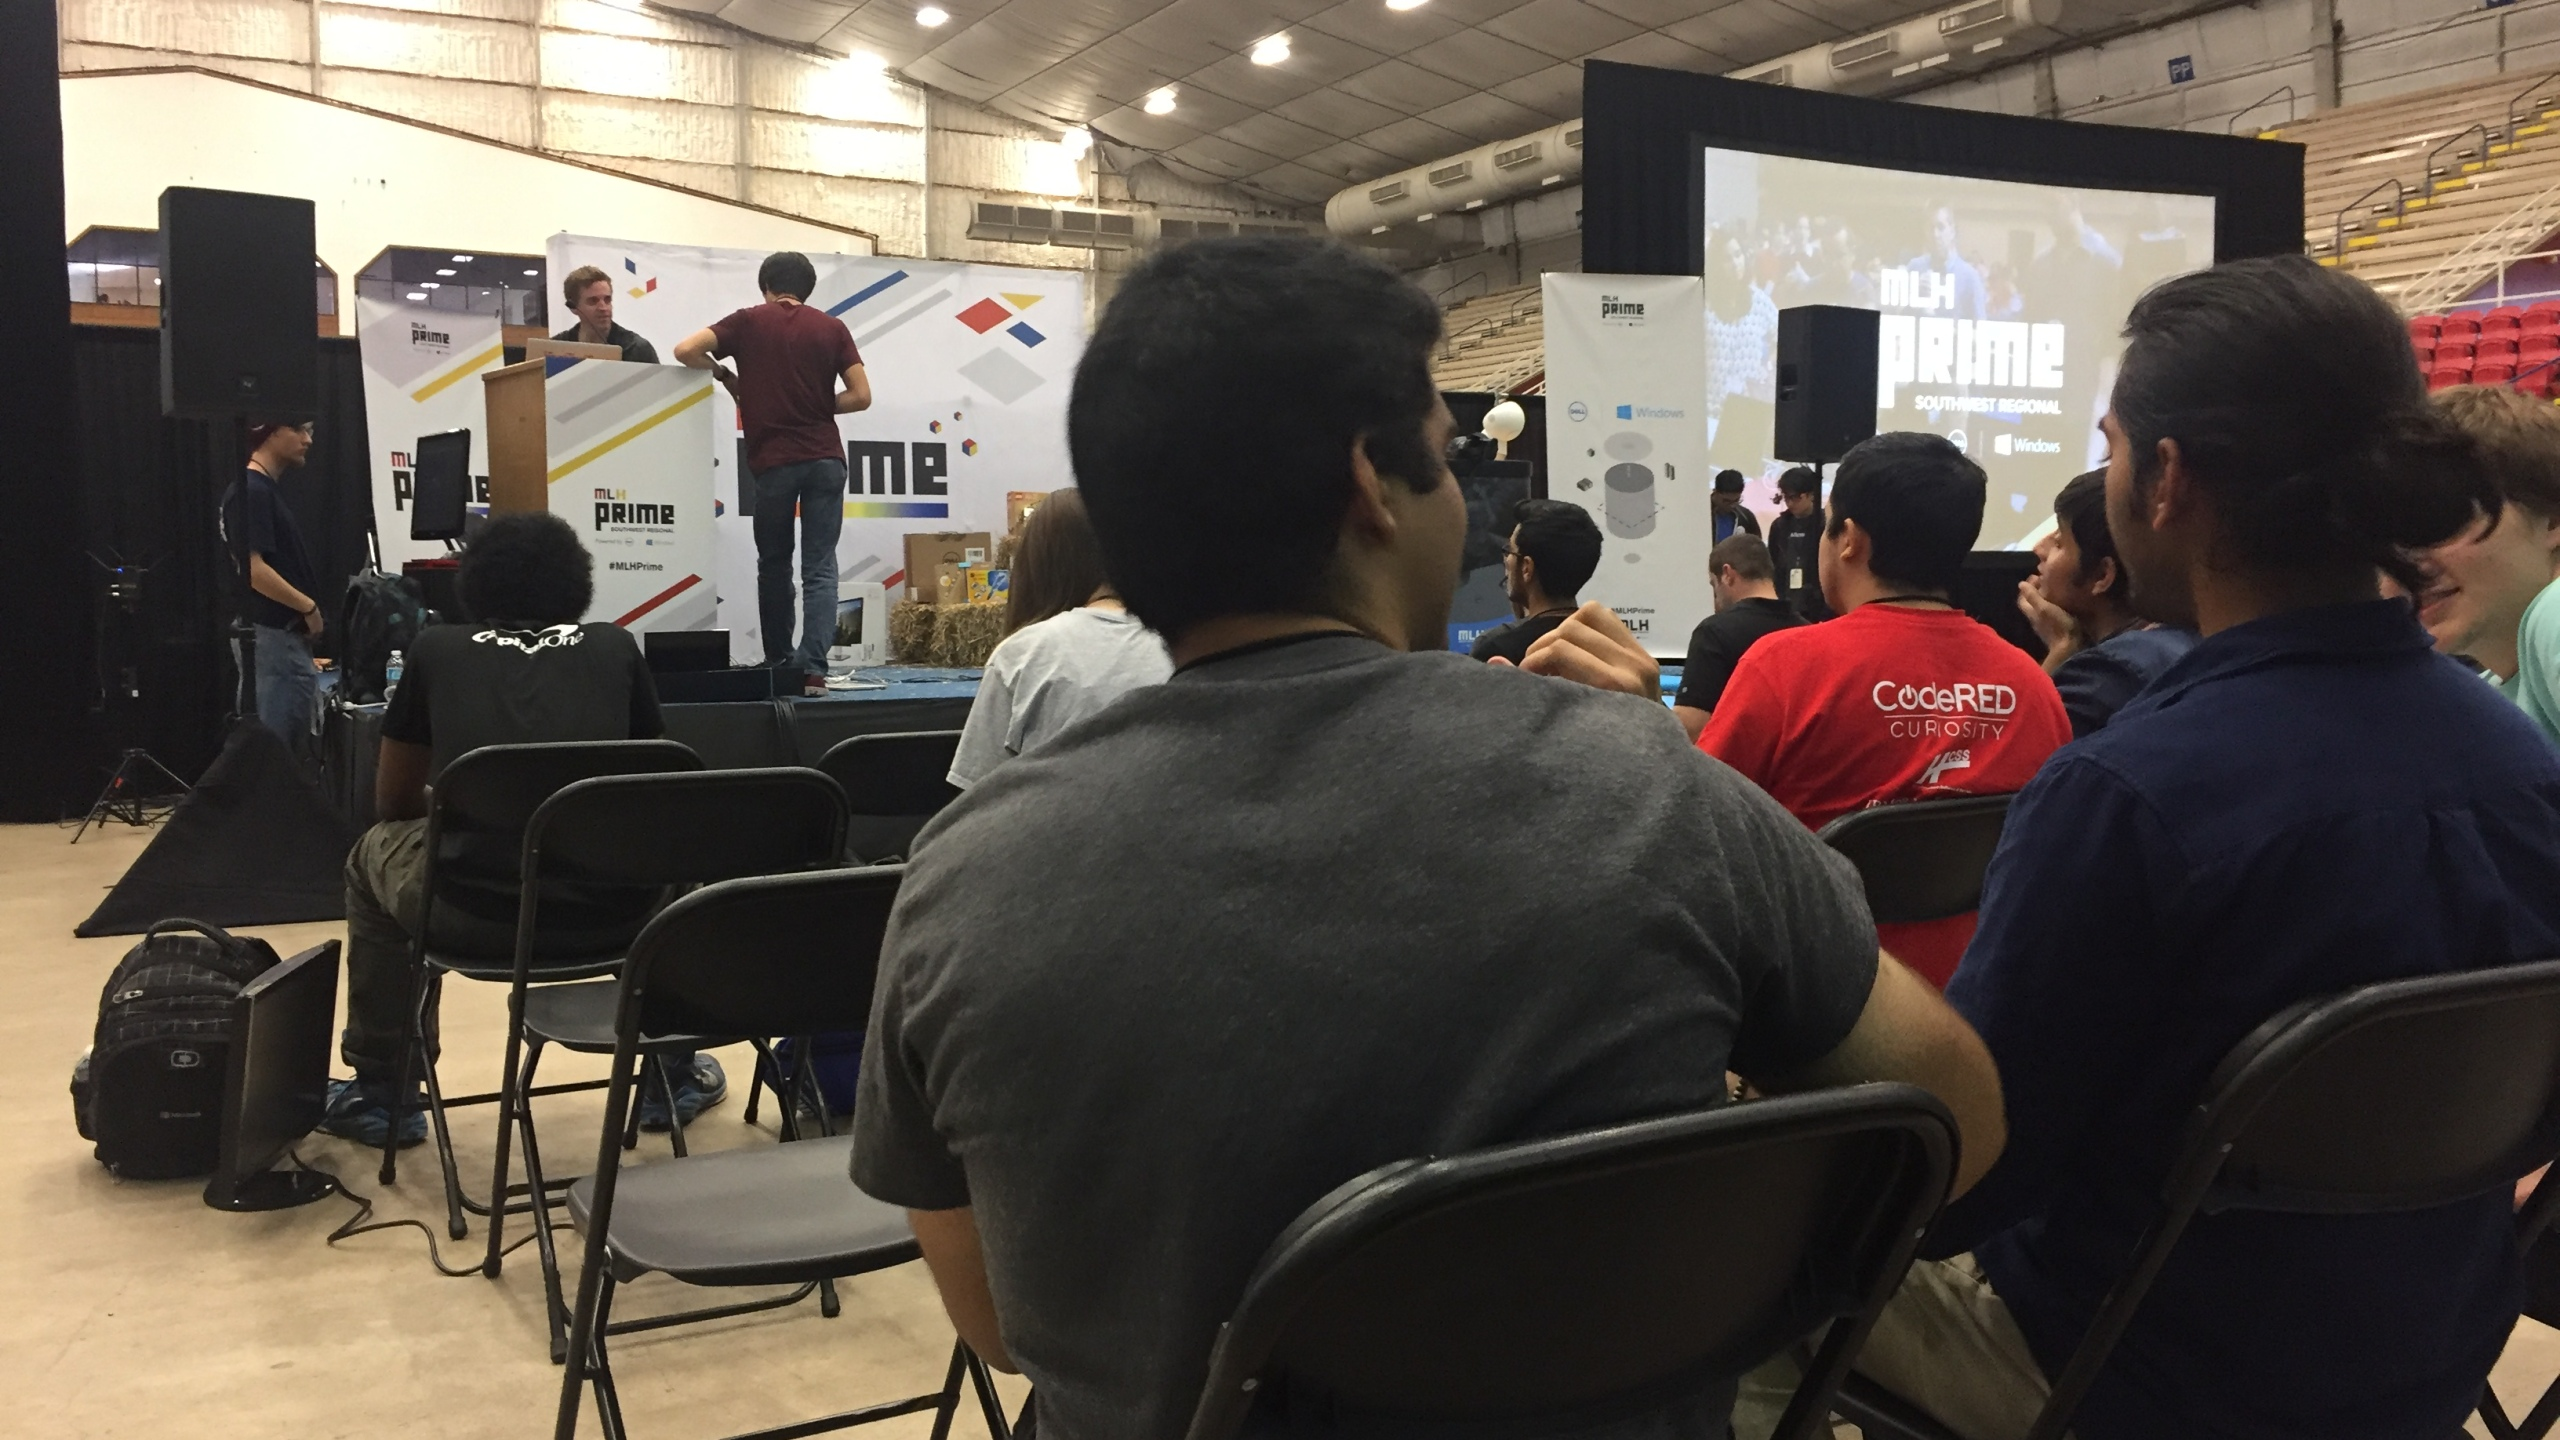 Over 400 students in the Southwest Region came together for a 24-hour Hackathon at the Travis County Expo Center. (KXAN_Todd Bailey)_374105